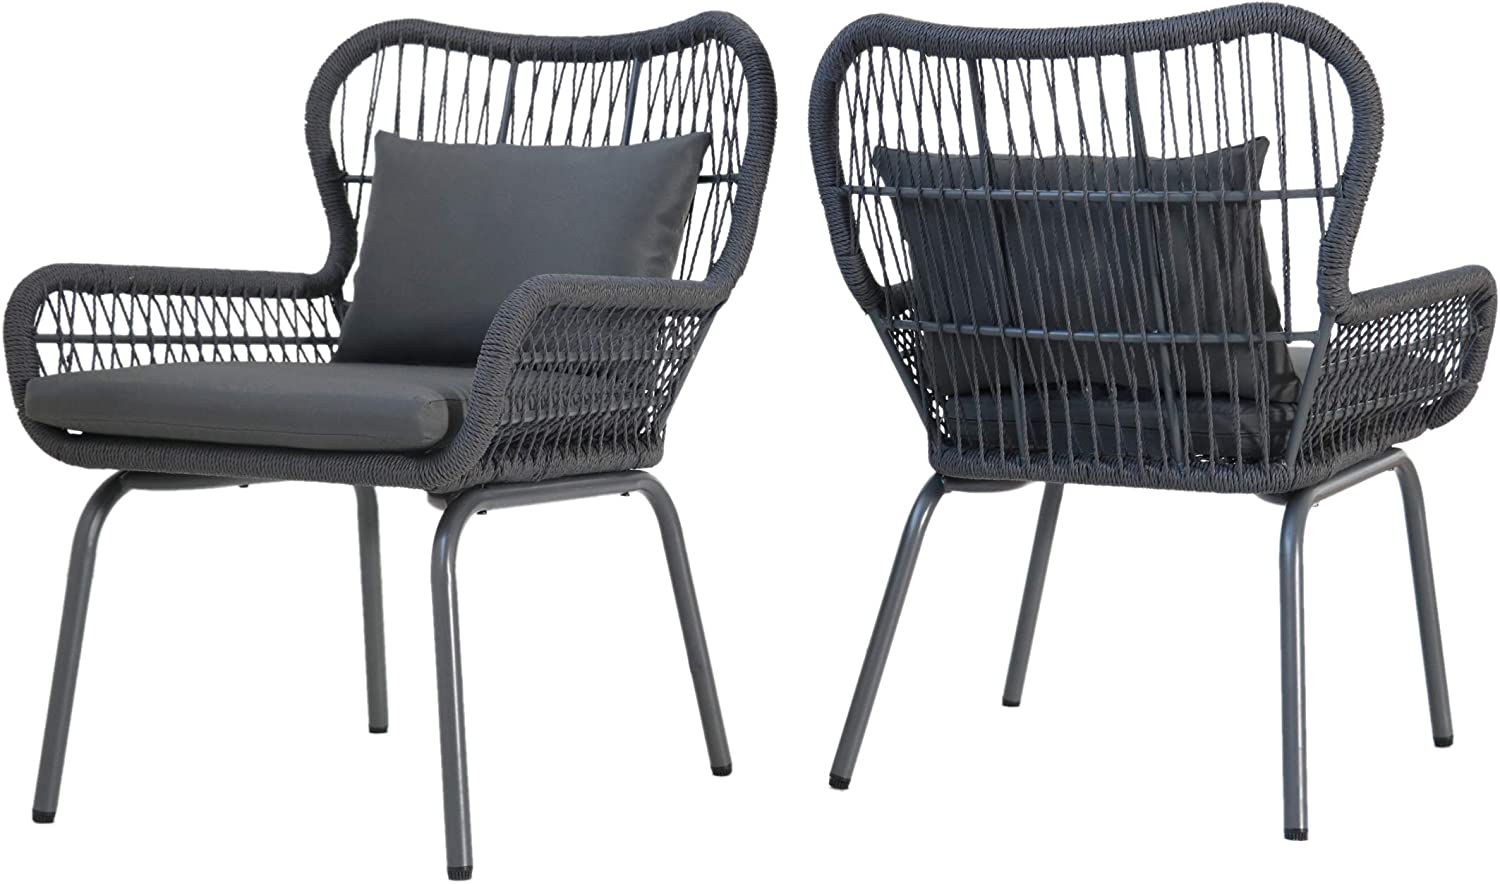 Great Deal Furniture Karen Outdoor Club Chairs, Steel and Rope, Water-Resistant Cushions, Boho, Dark Gray and Gray (Set of 2)